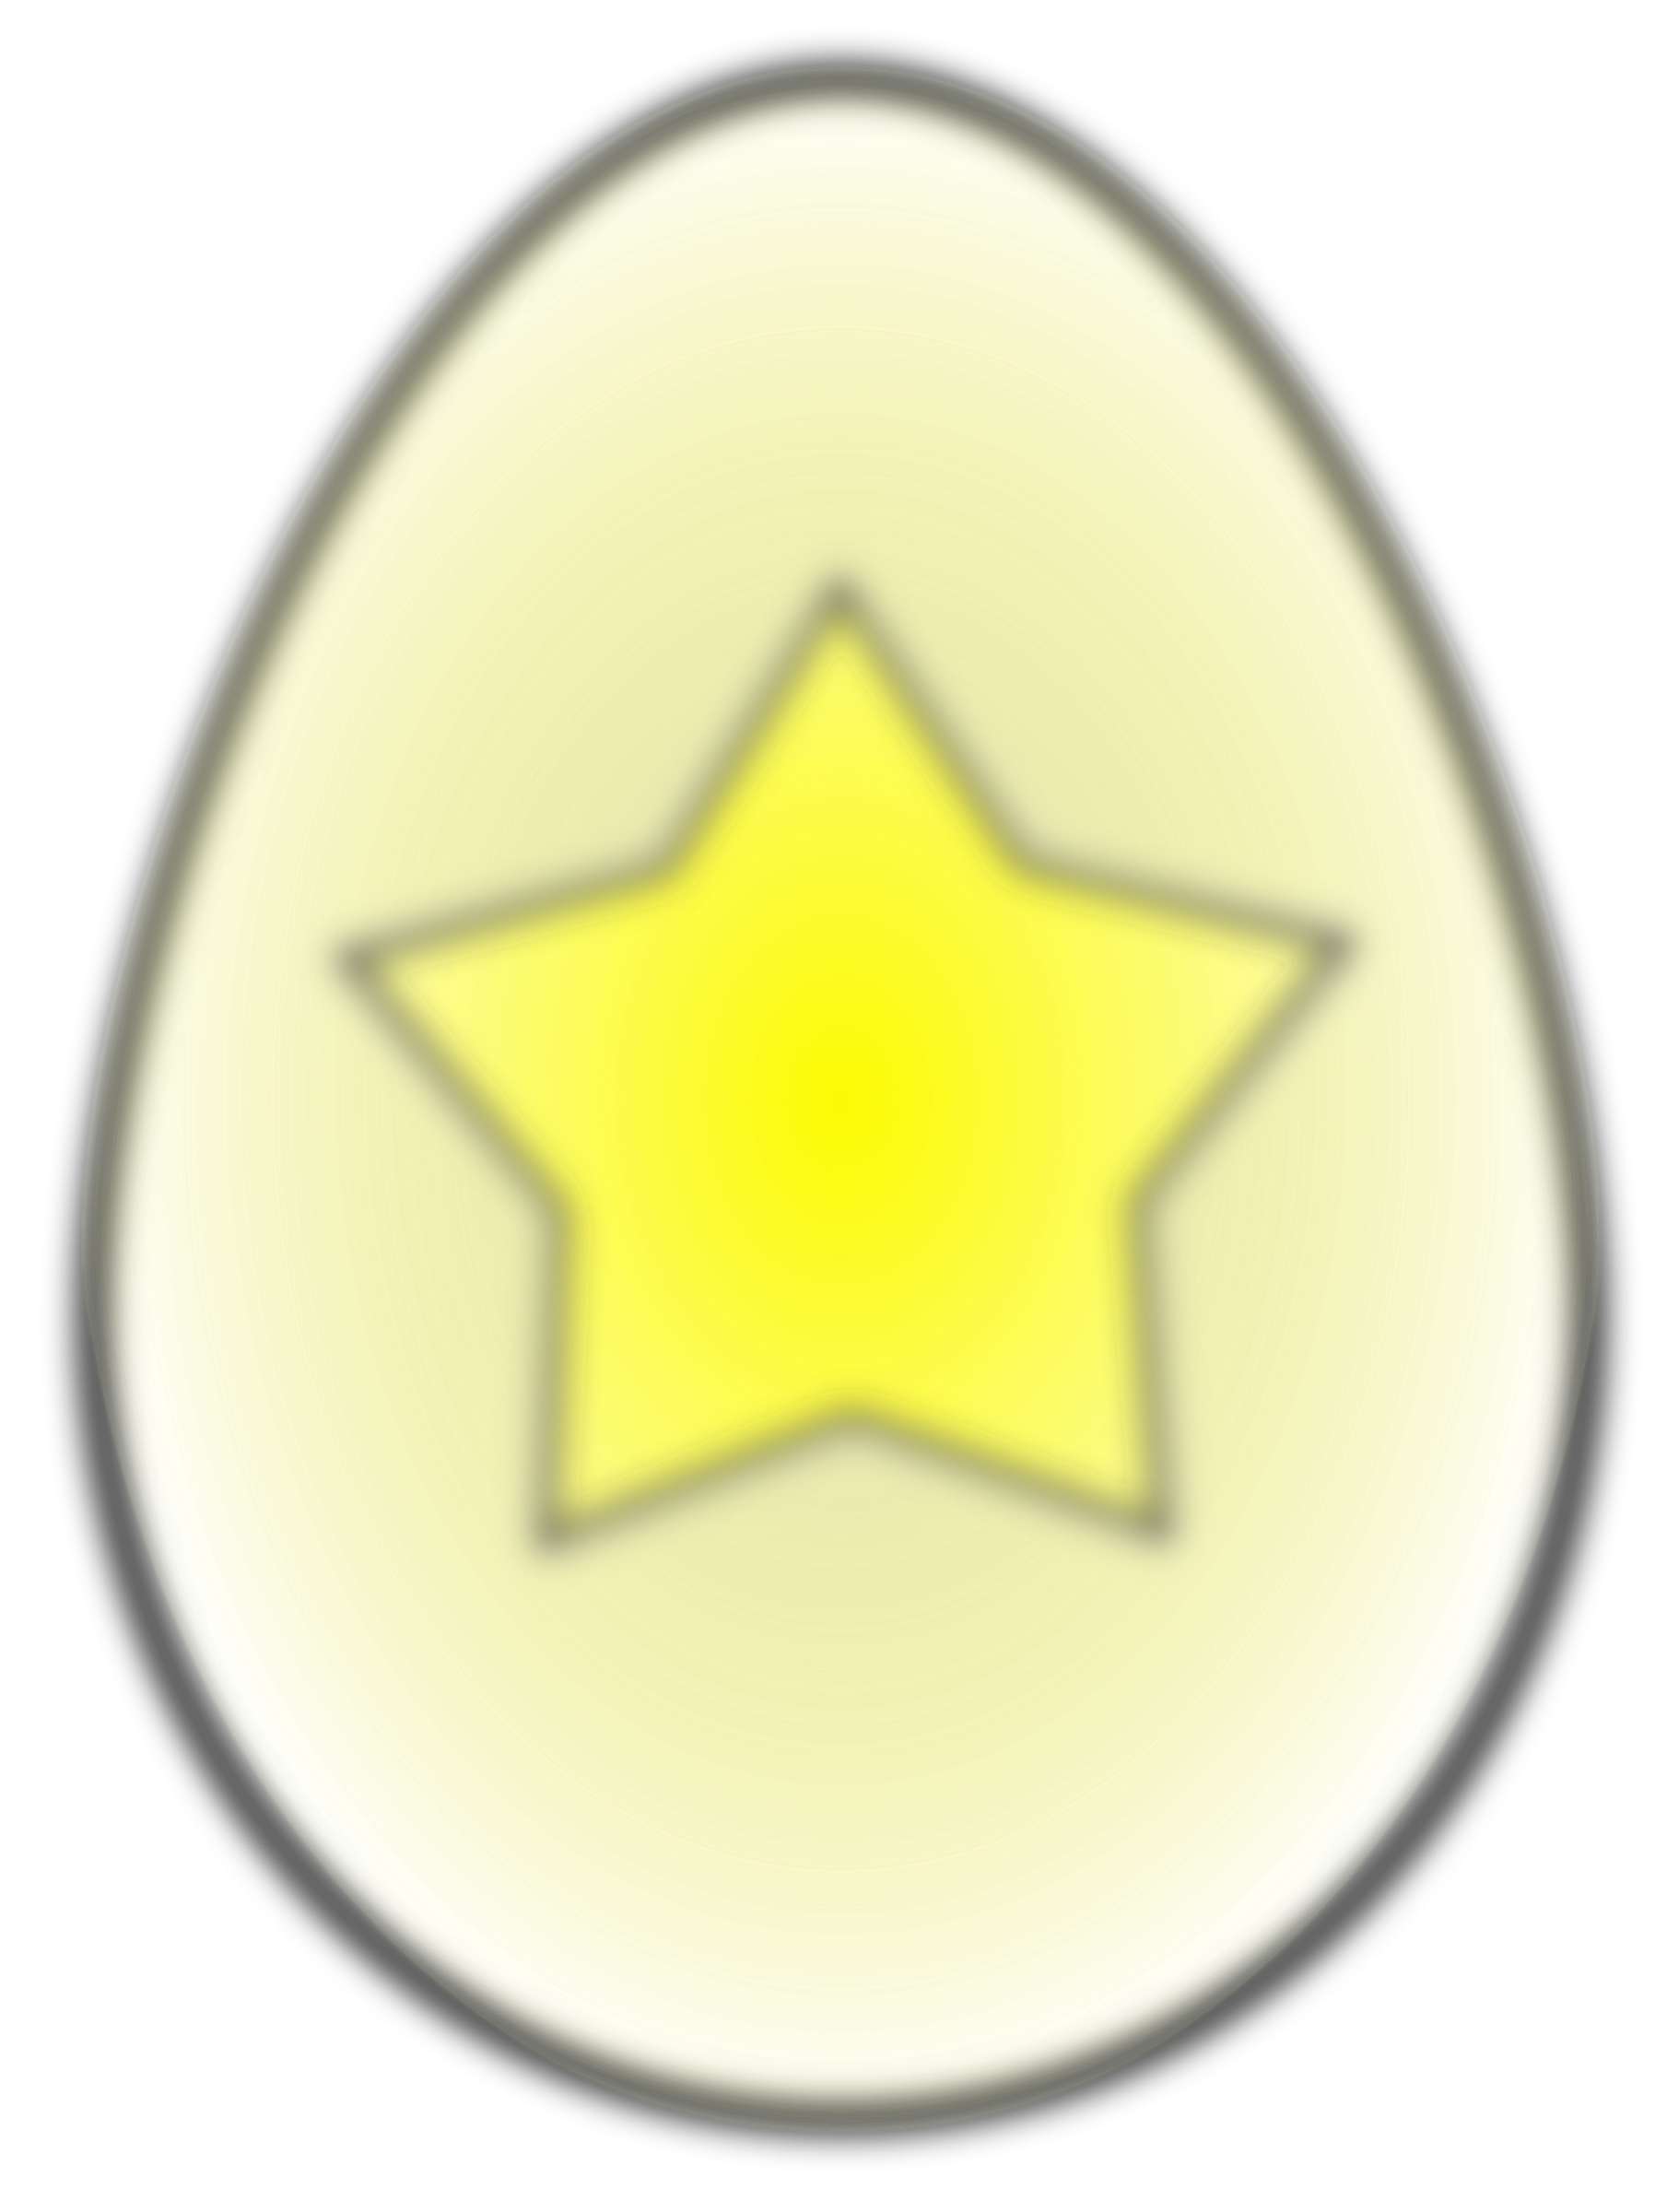 Star sticker clipart image library download Clipart - Easter egg (star) image library download